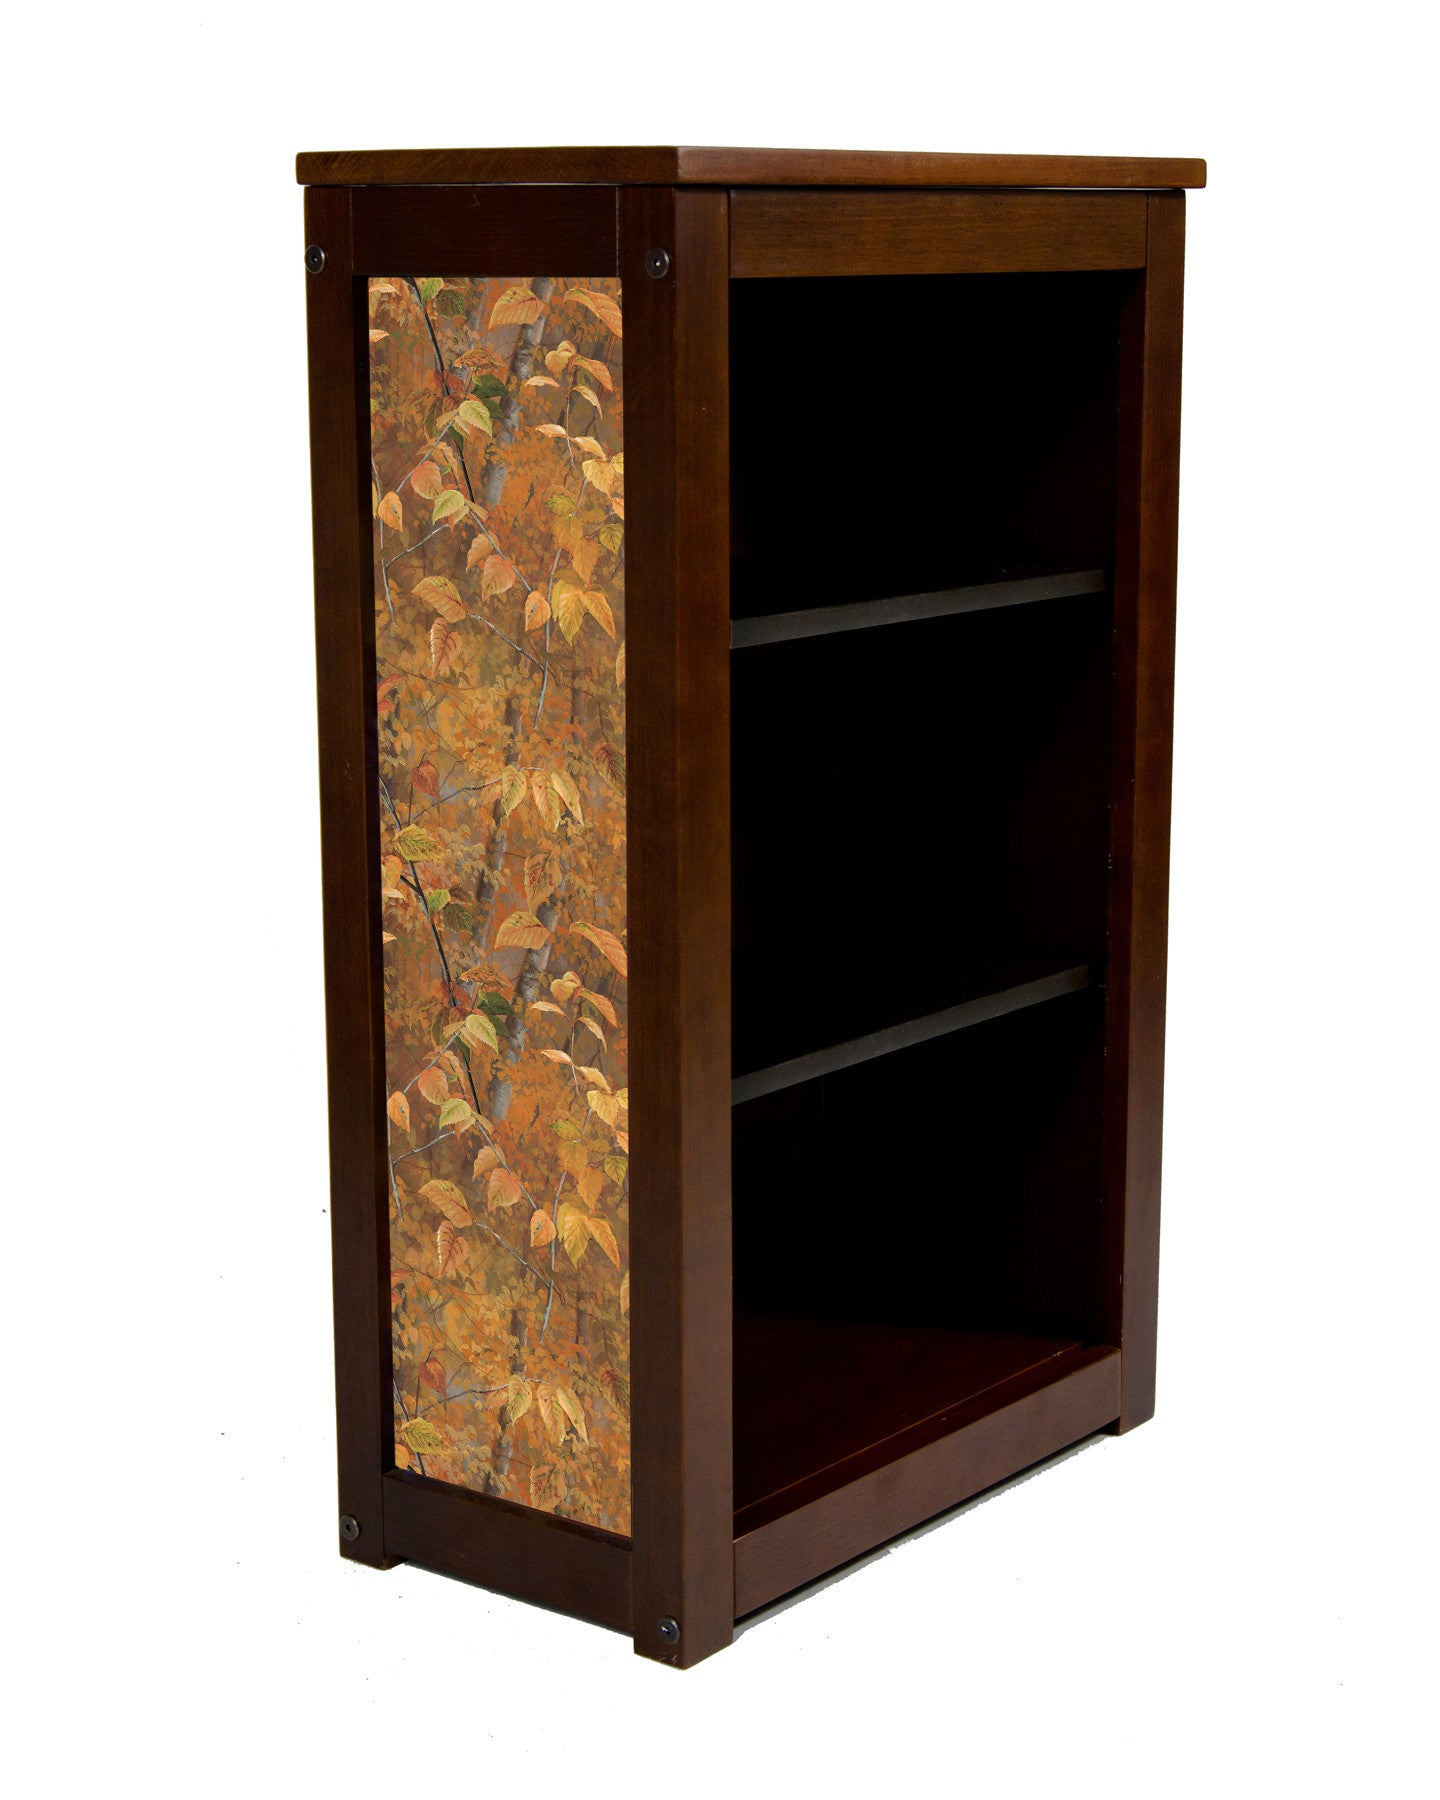 Book Cabinet-3 Shelf-Shades of Autumn Leaves-Millette